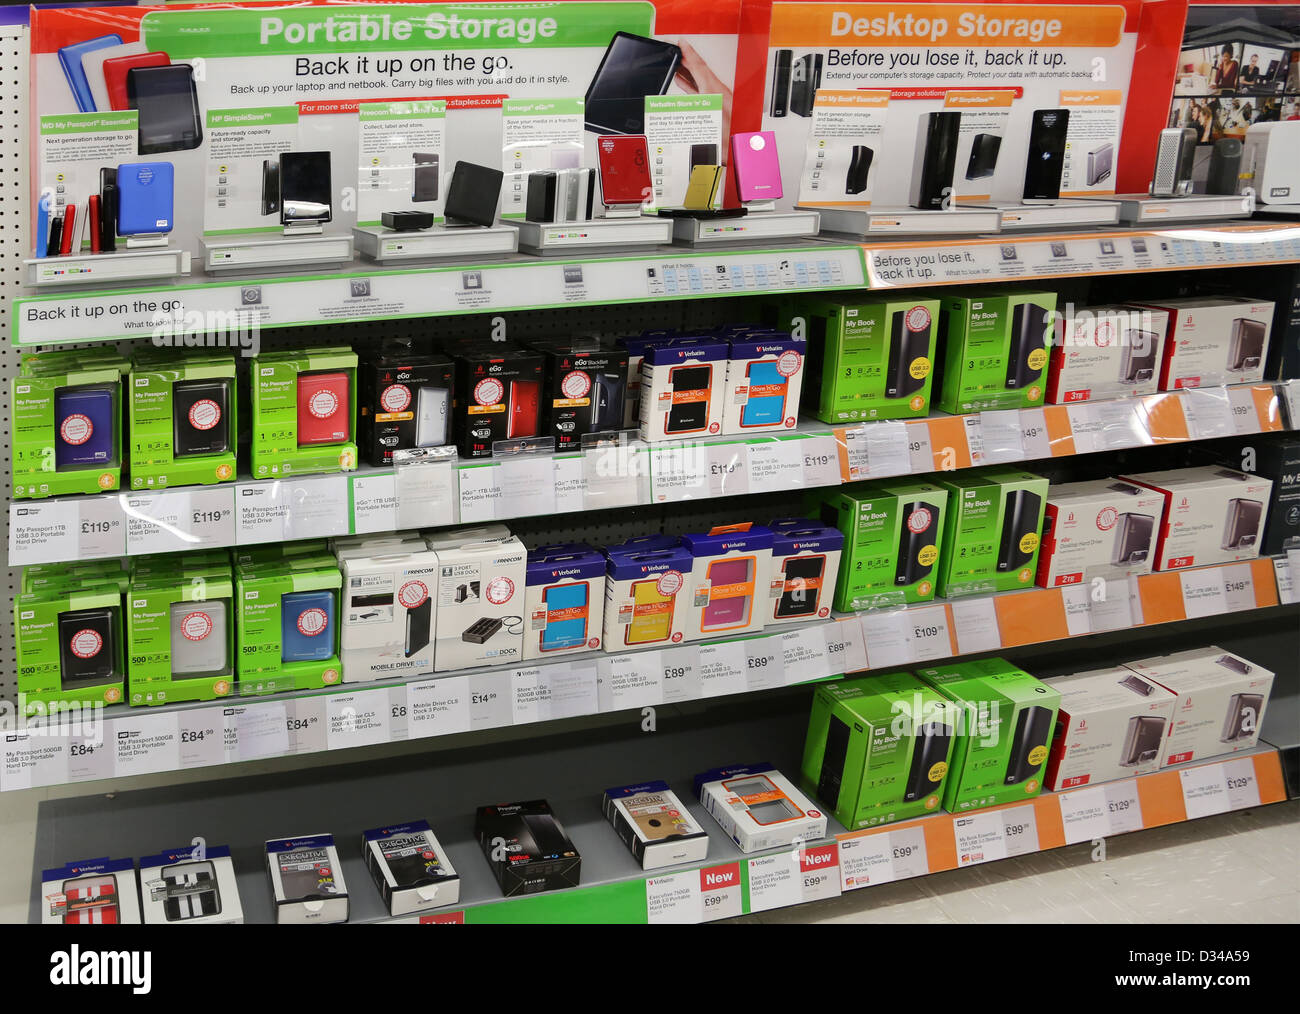 Portable Storage And Desktop Storage Hard Drives On Sale In Shop - Stock Image